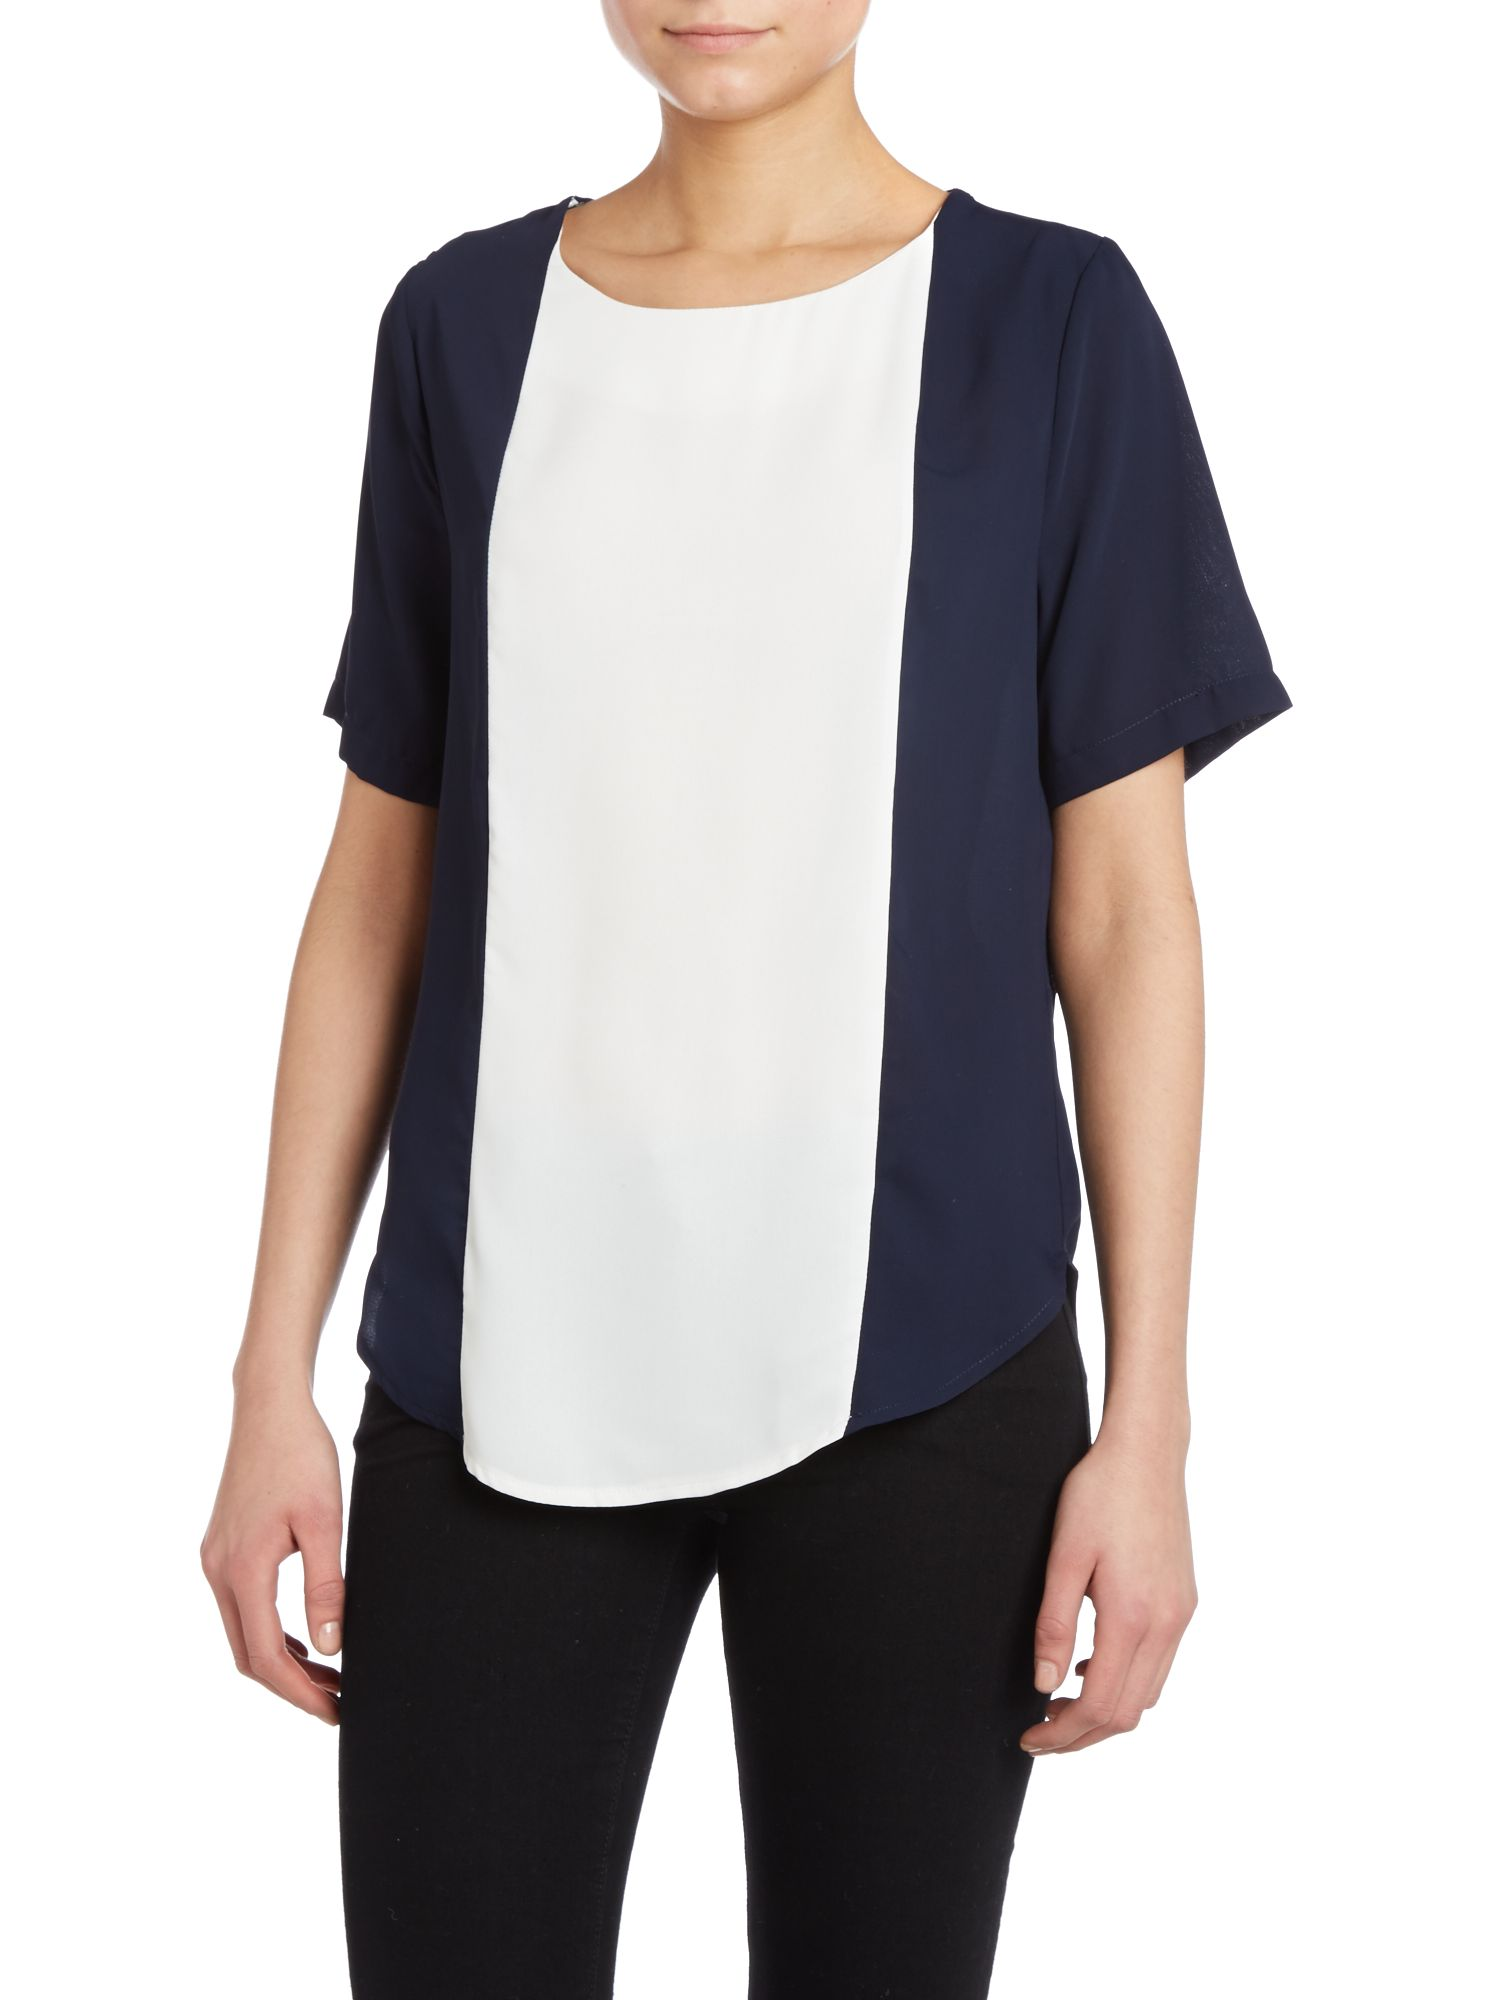 Contrast panel short sleeved top